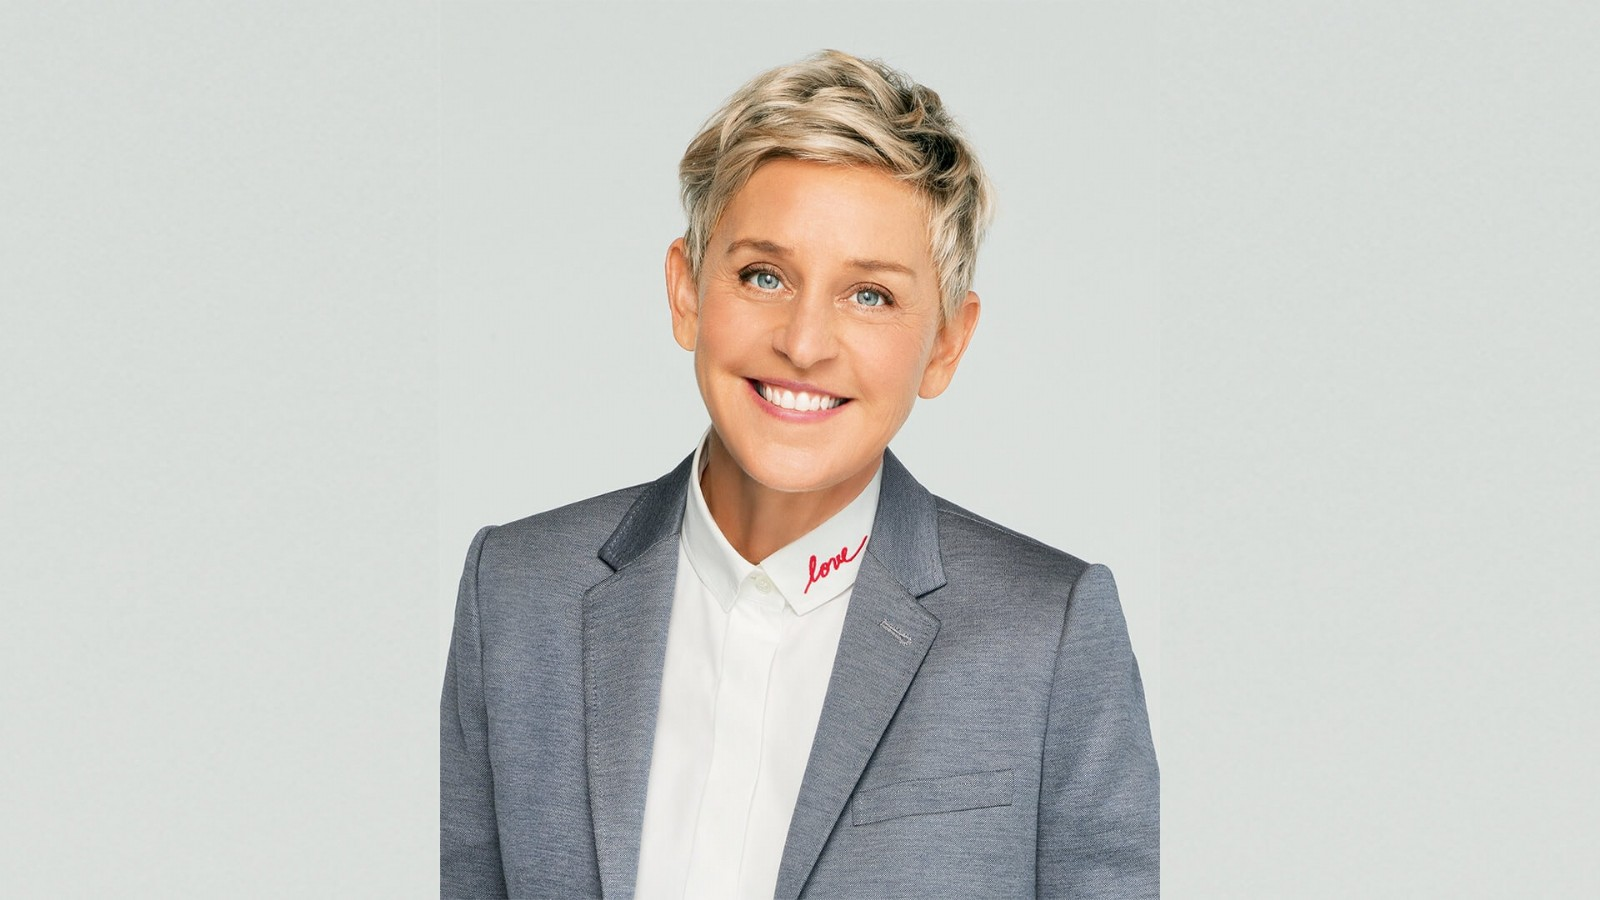 """Former Ellen DeGeneres Show Employees Claim They Were Subject to """"Toxic Work Environment"""""""